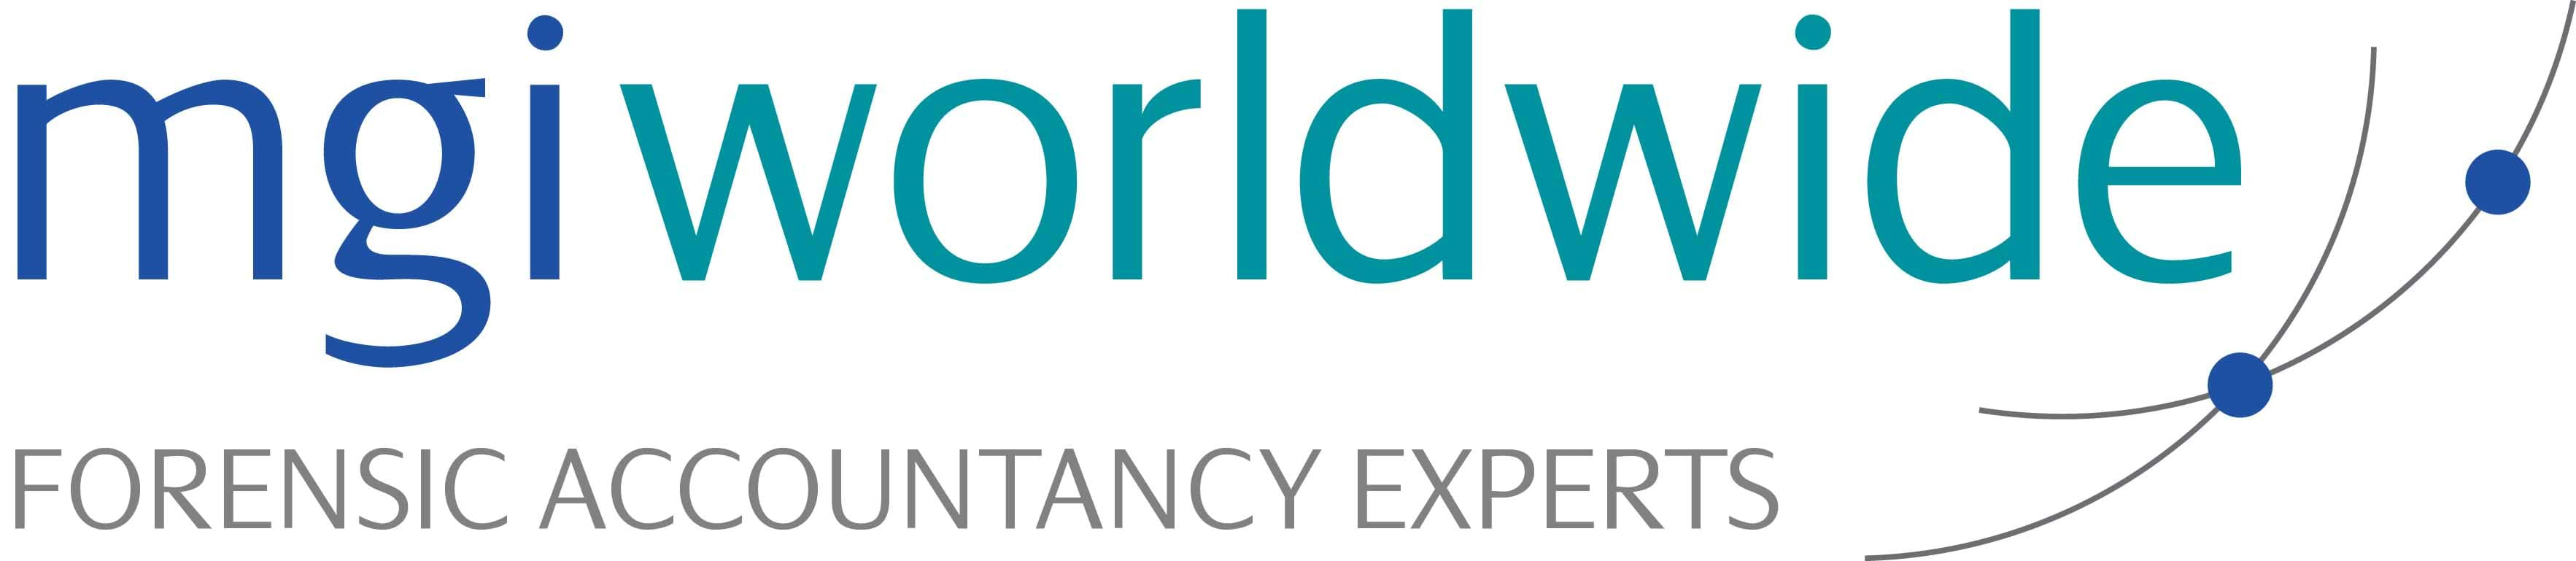 MGI World MGI Global Forensic Accountancy Logo FINAL